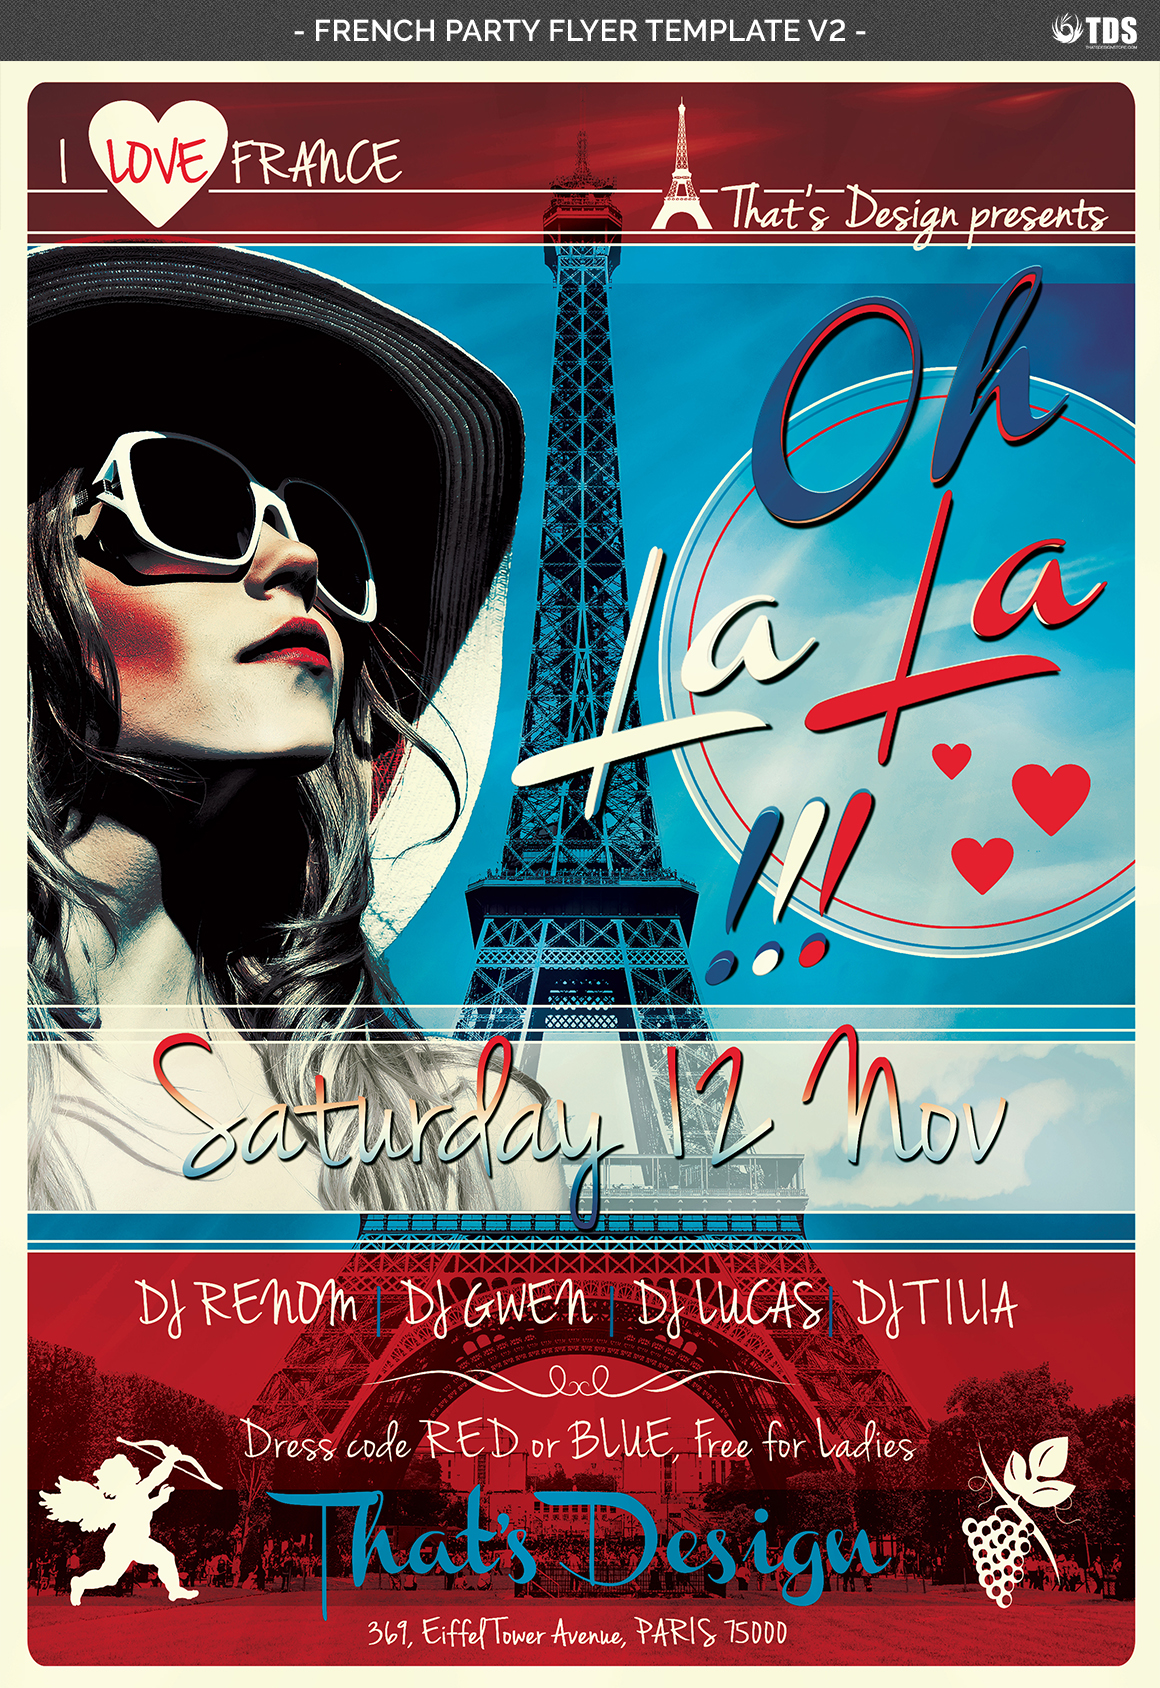 French Party Flyer Template V2 example image 4